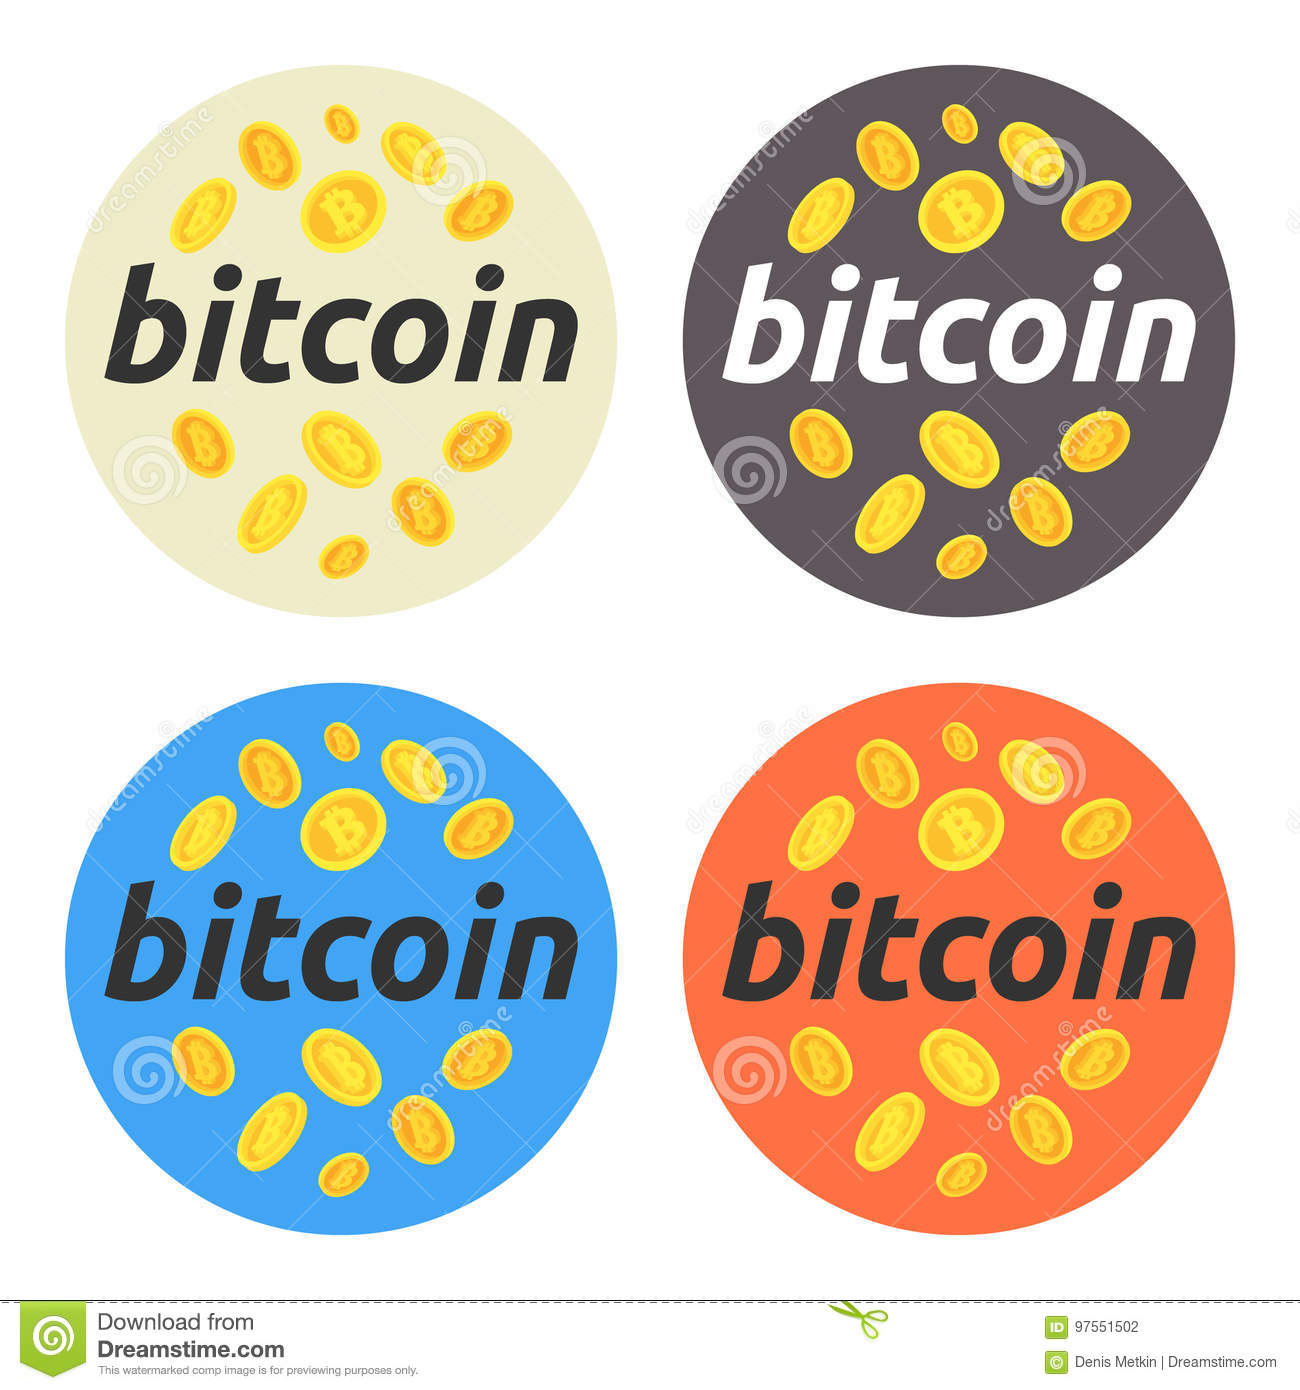 How to make money on bitcoin stock